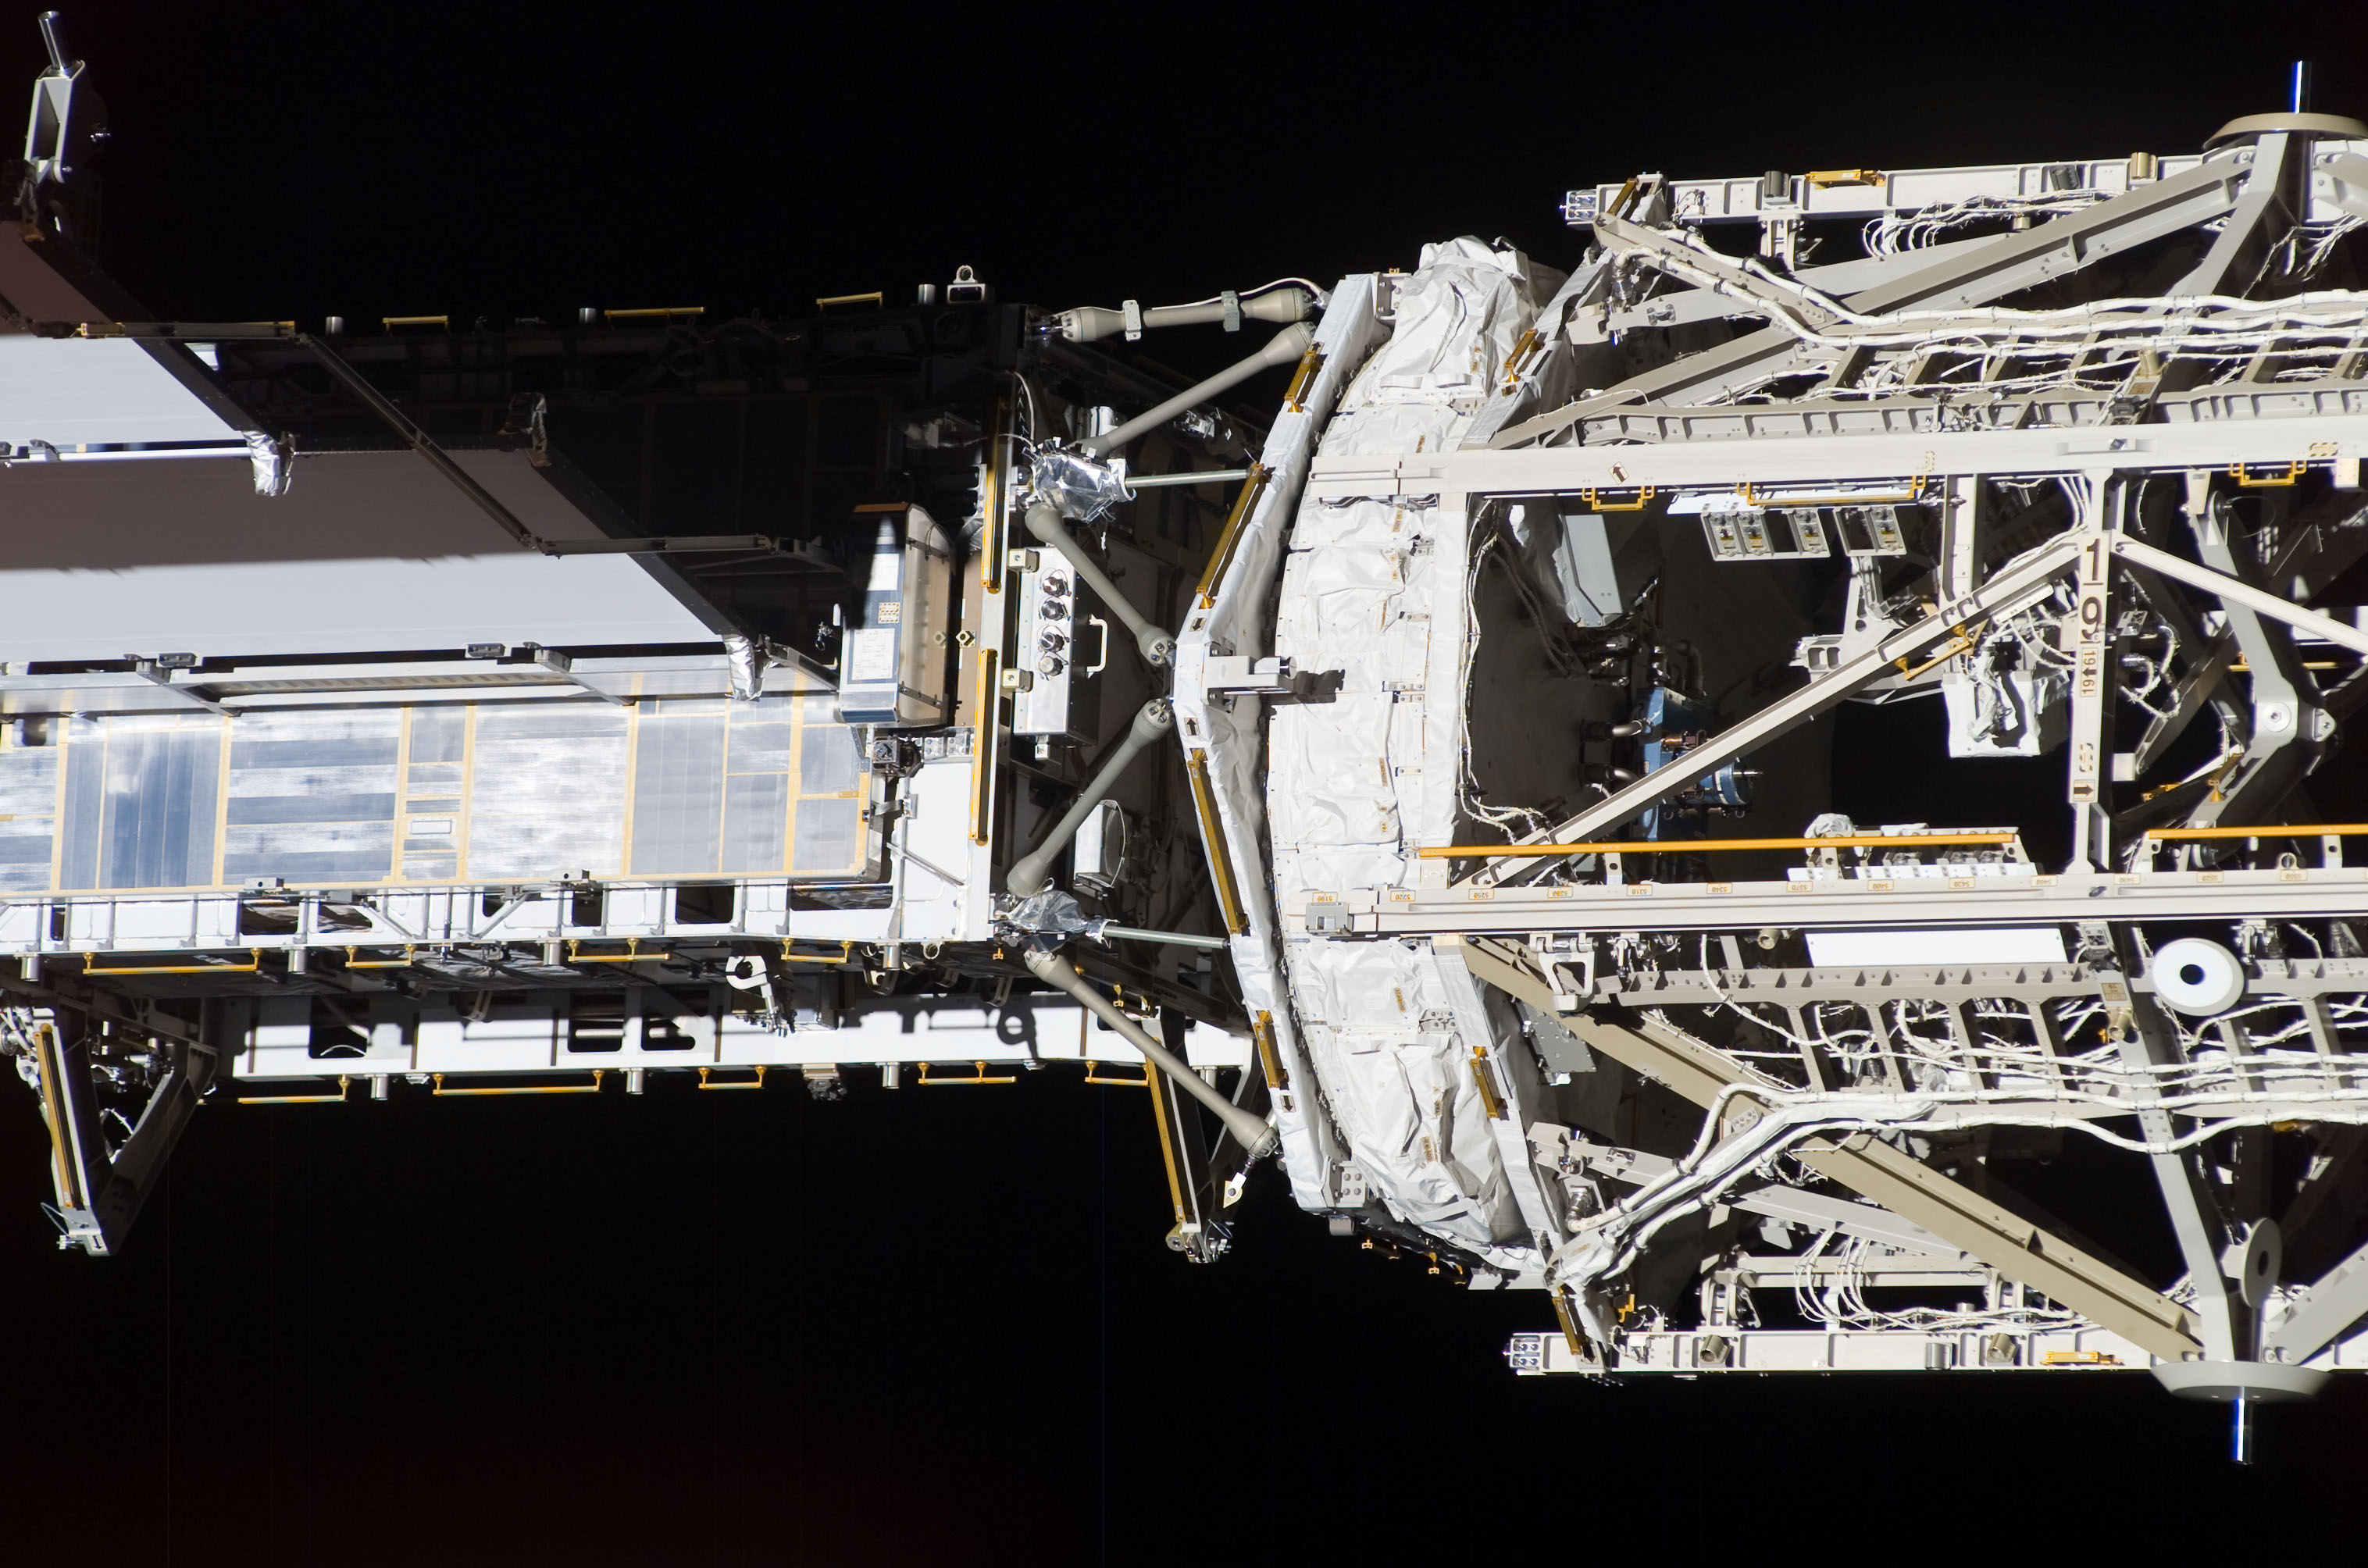 S118E10401 - STS-118 - Exterior view of the ISS taken during STS-118